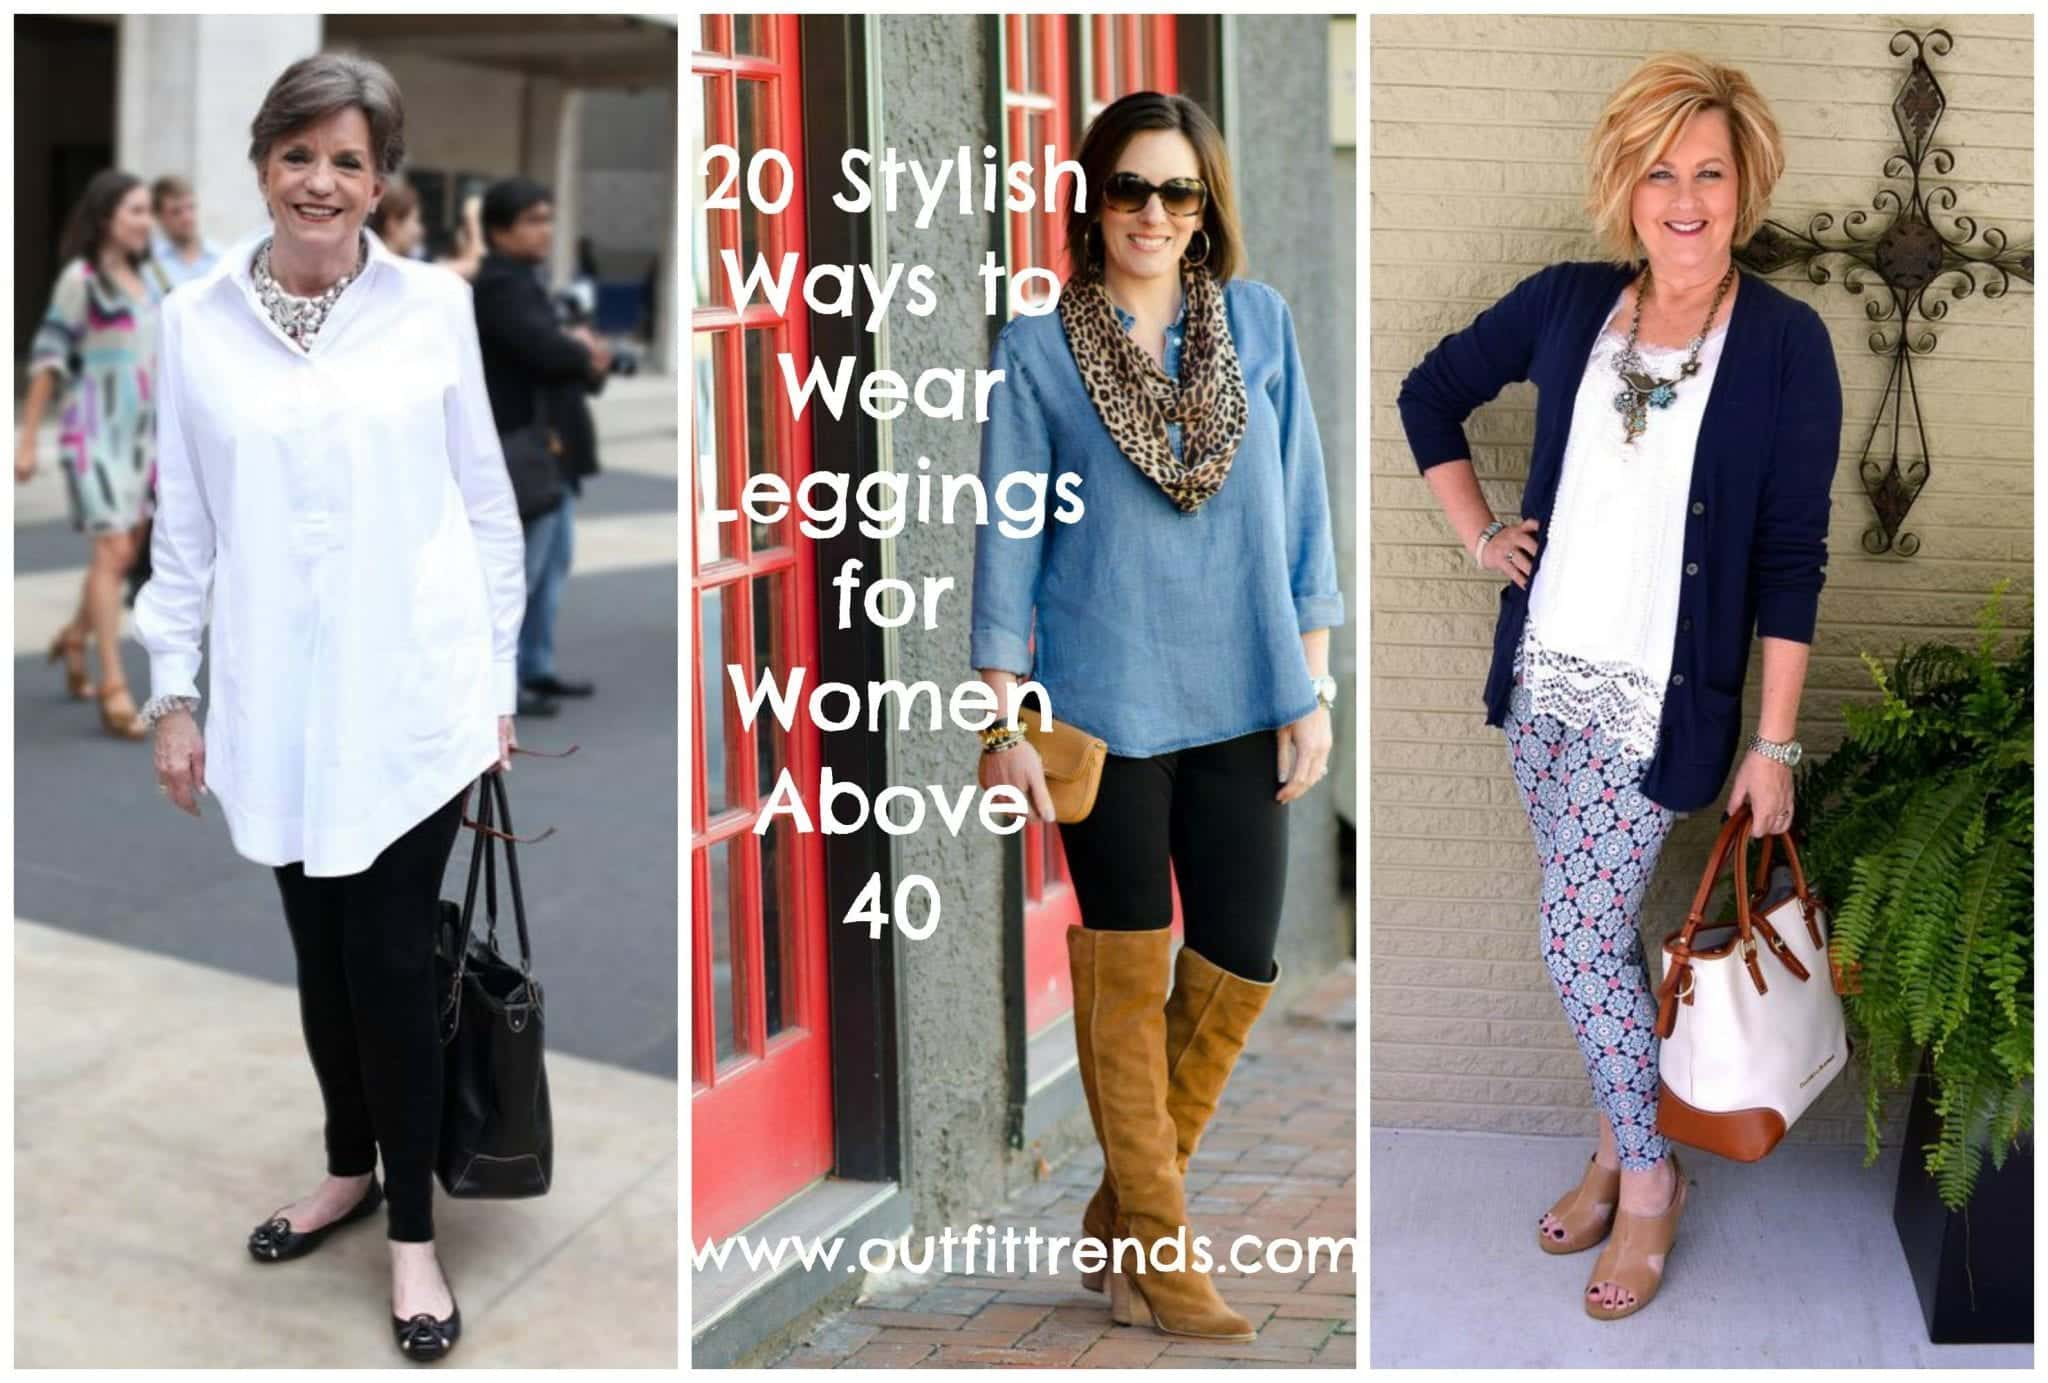 Legging Tips for Women Over 40– 20 Ways to Wear Legging when Above 40